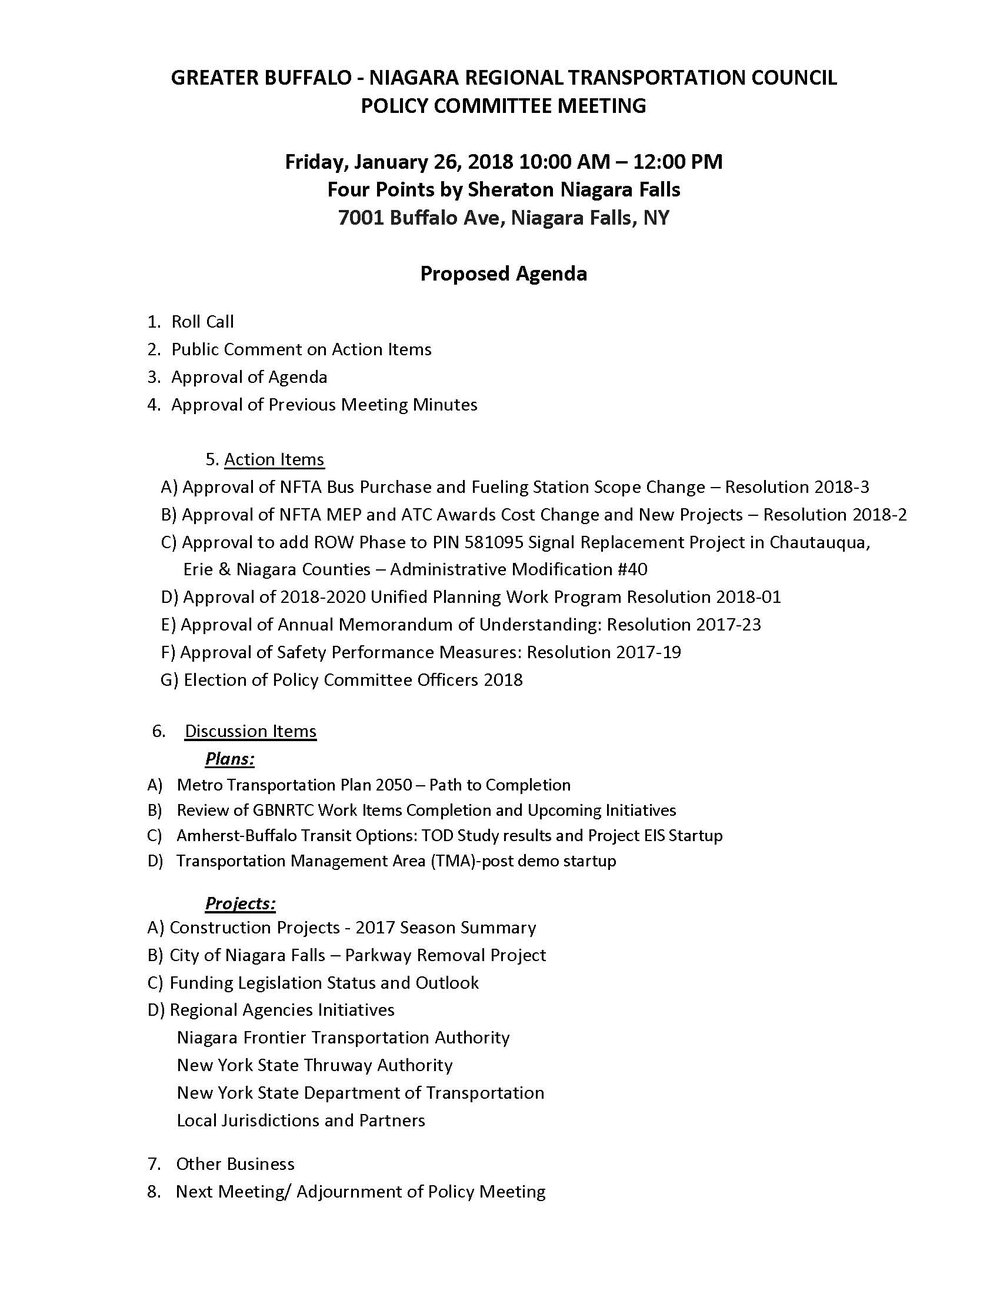 Policy Committee Draft Agenda - January 26, 2018.jpg